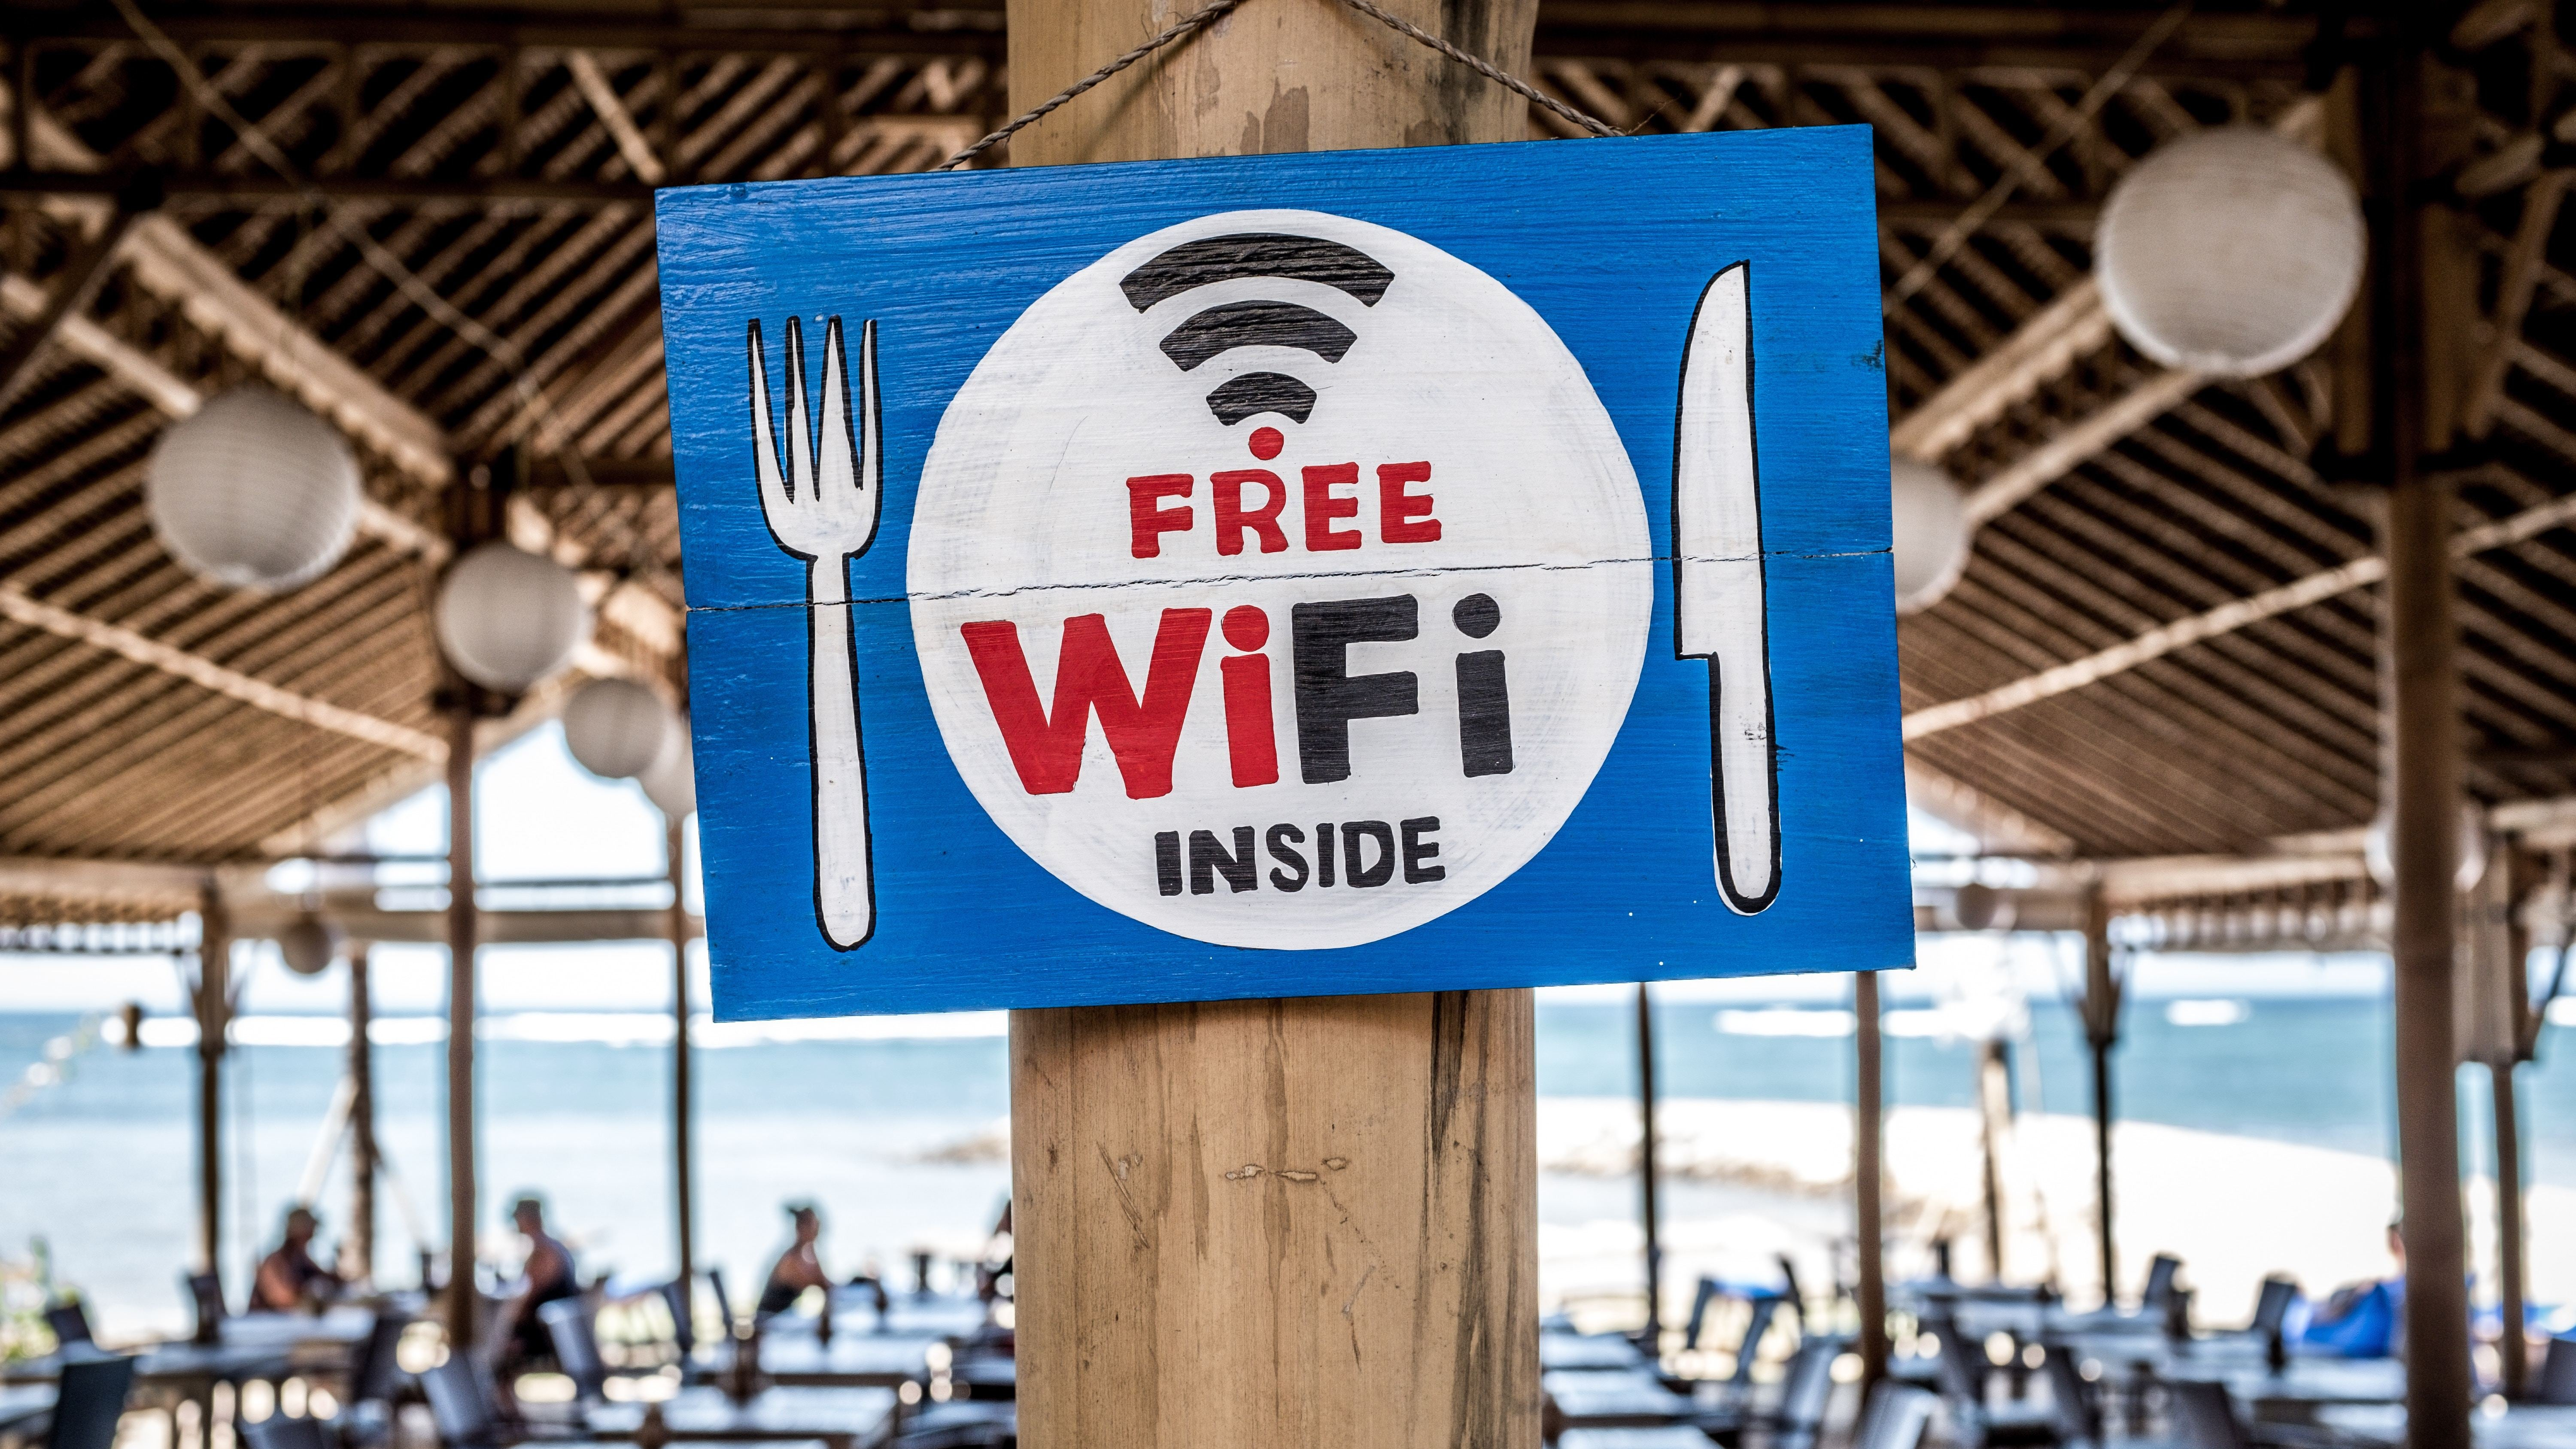 See How Bad Your Wi-Fi Situation Really Is With WiFi Analyser